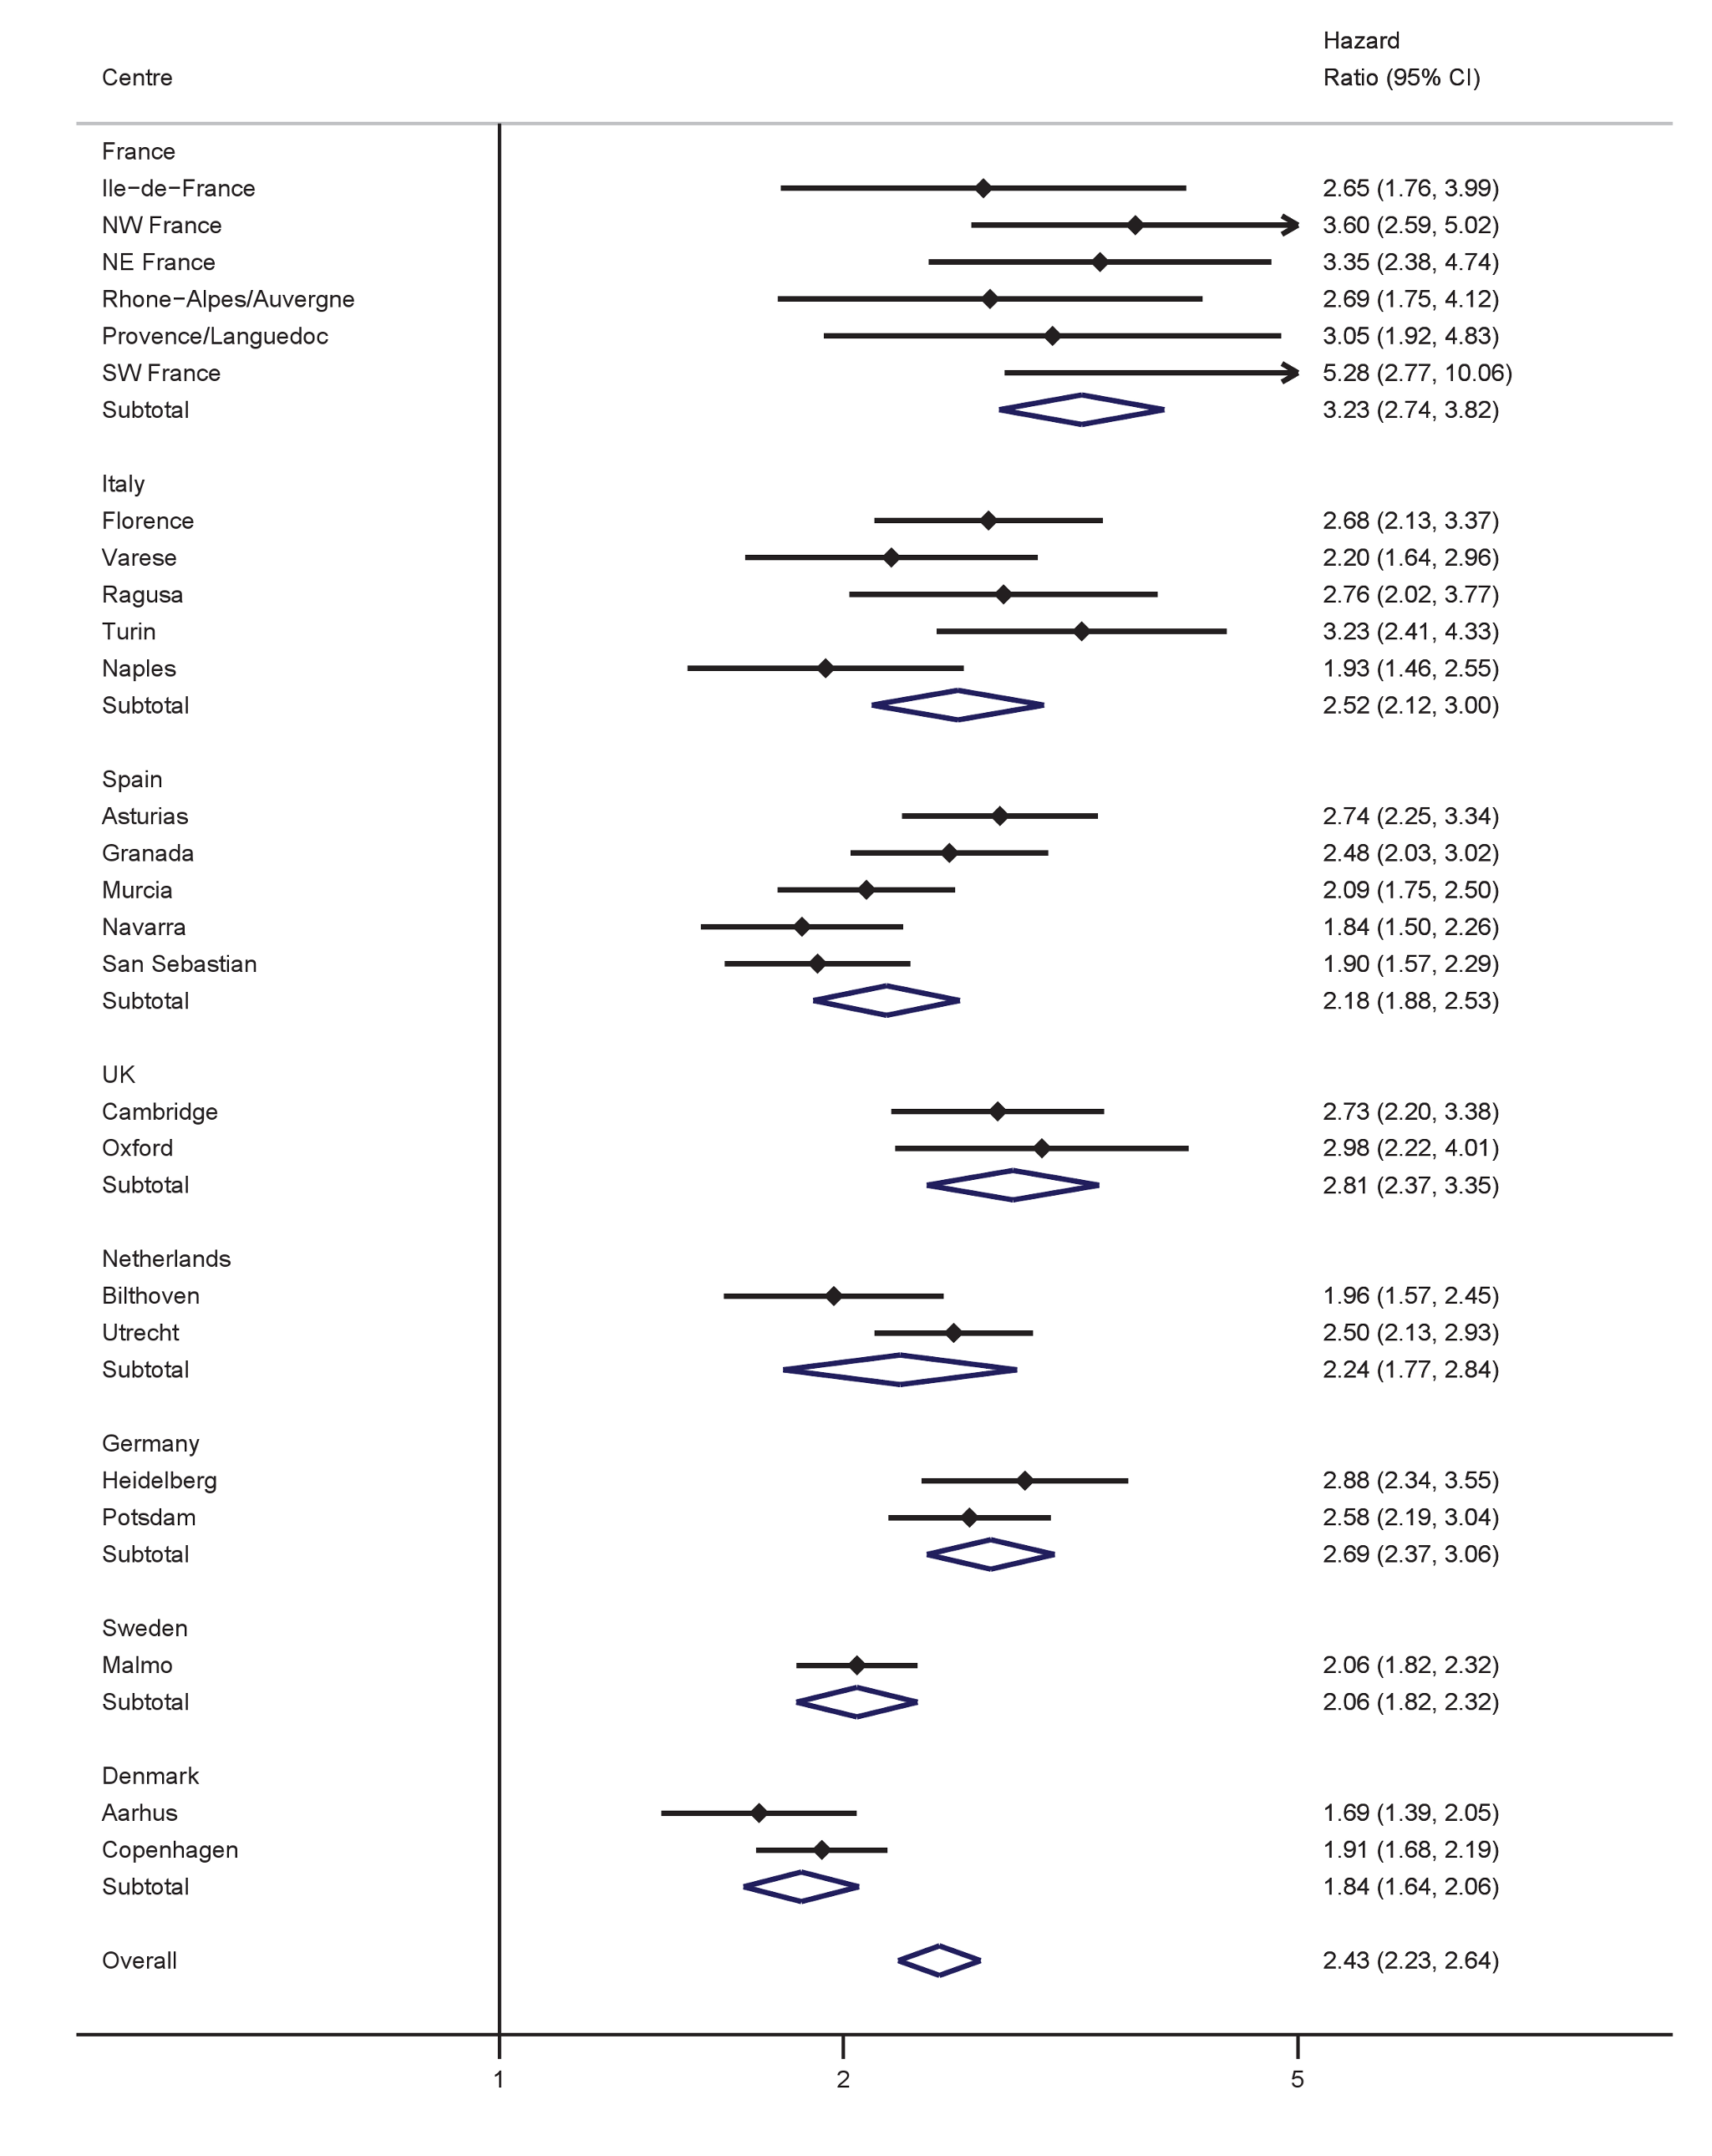 Hazard ratios for type 2 diabetes per 1 SD increase in WC (SD = 11.2 cm) in women.